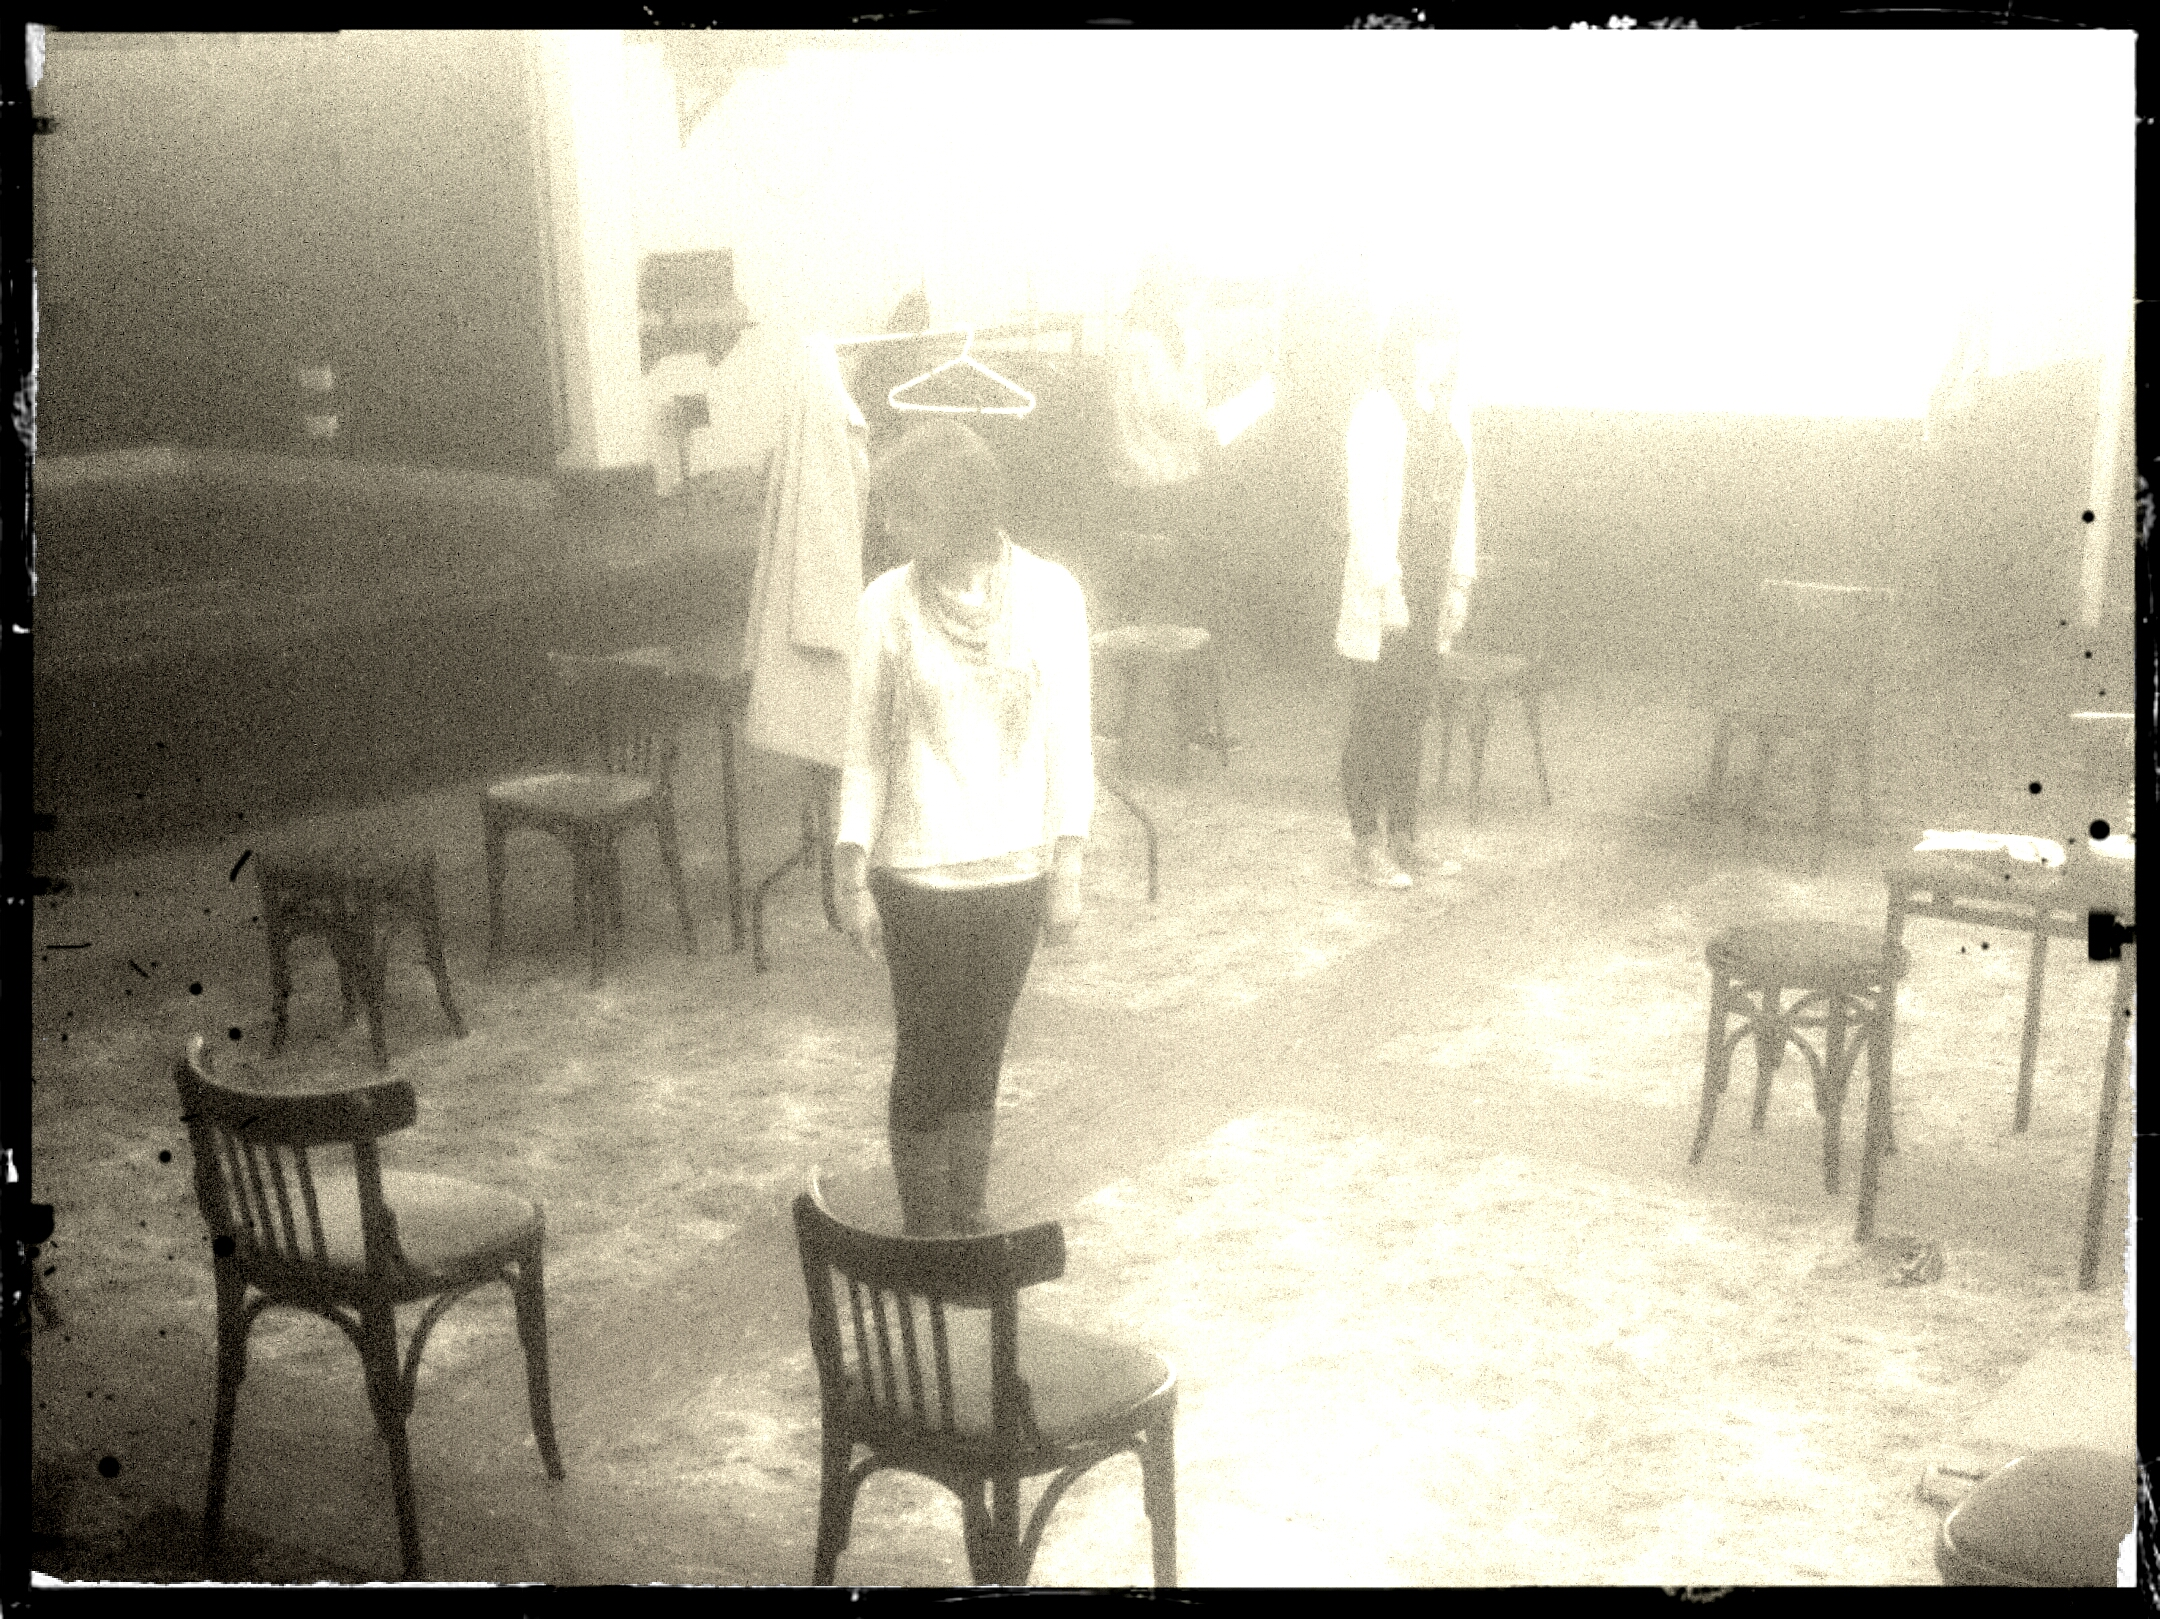 The Maids - rehearsal shot